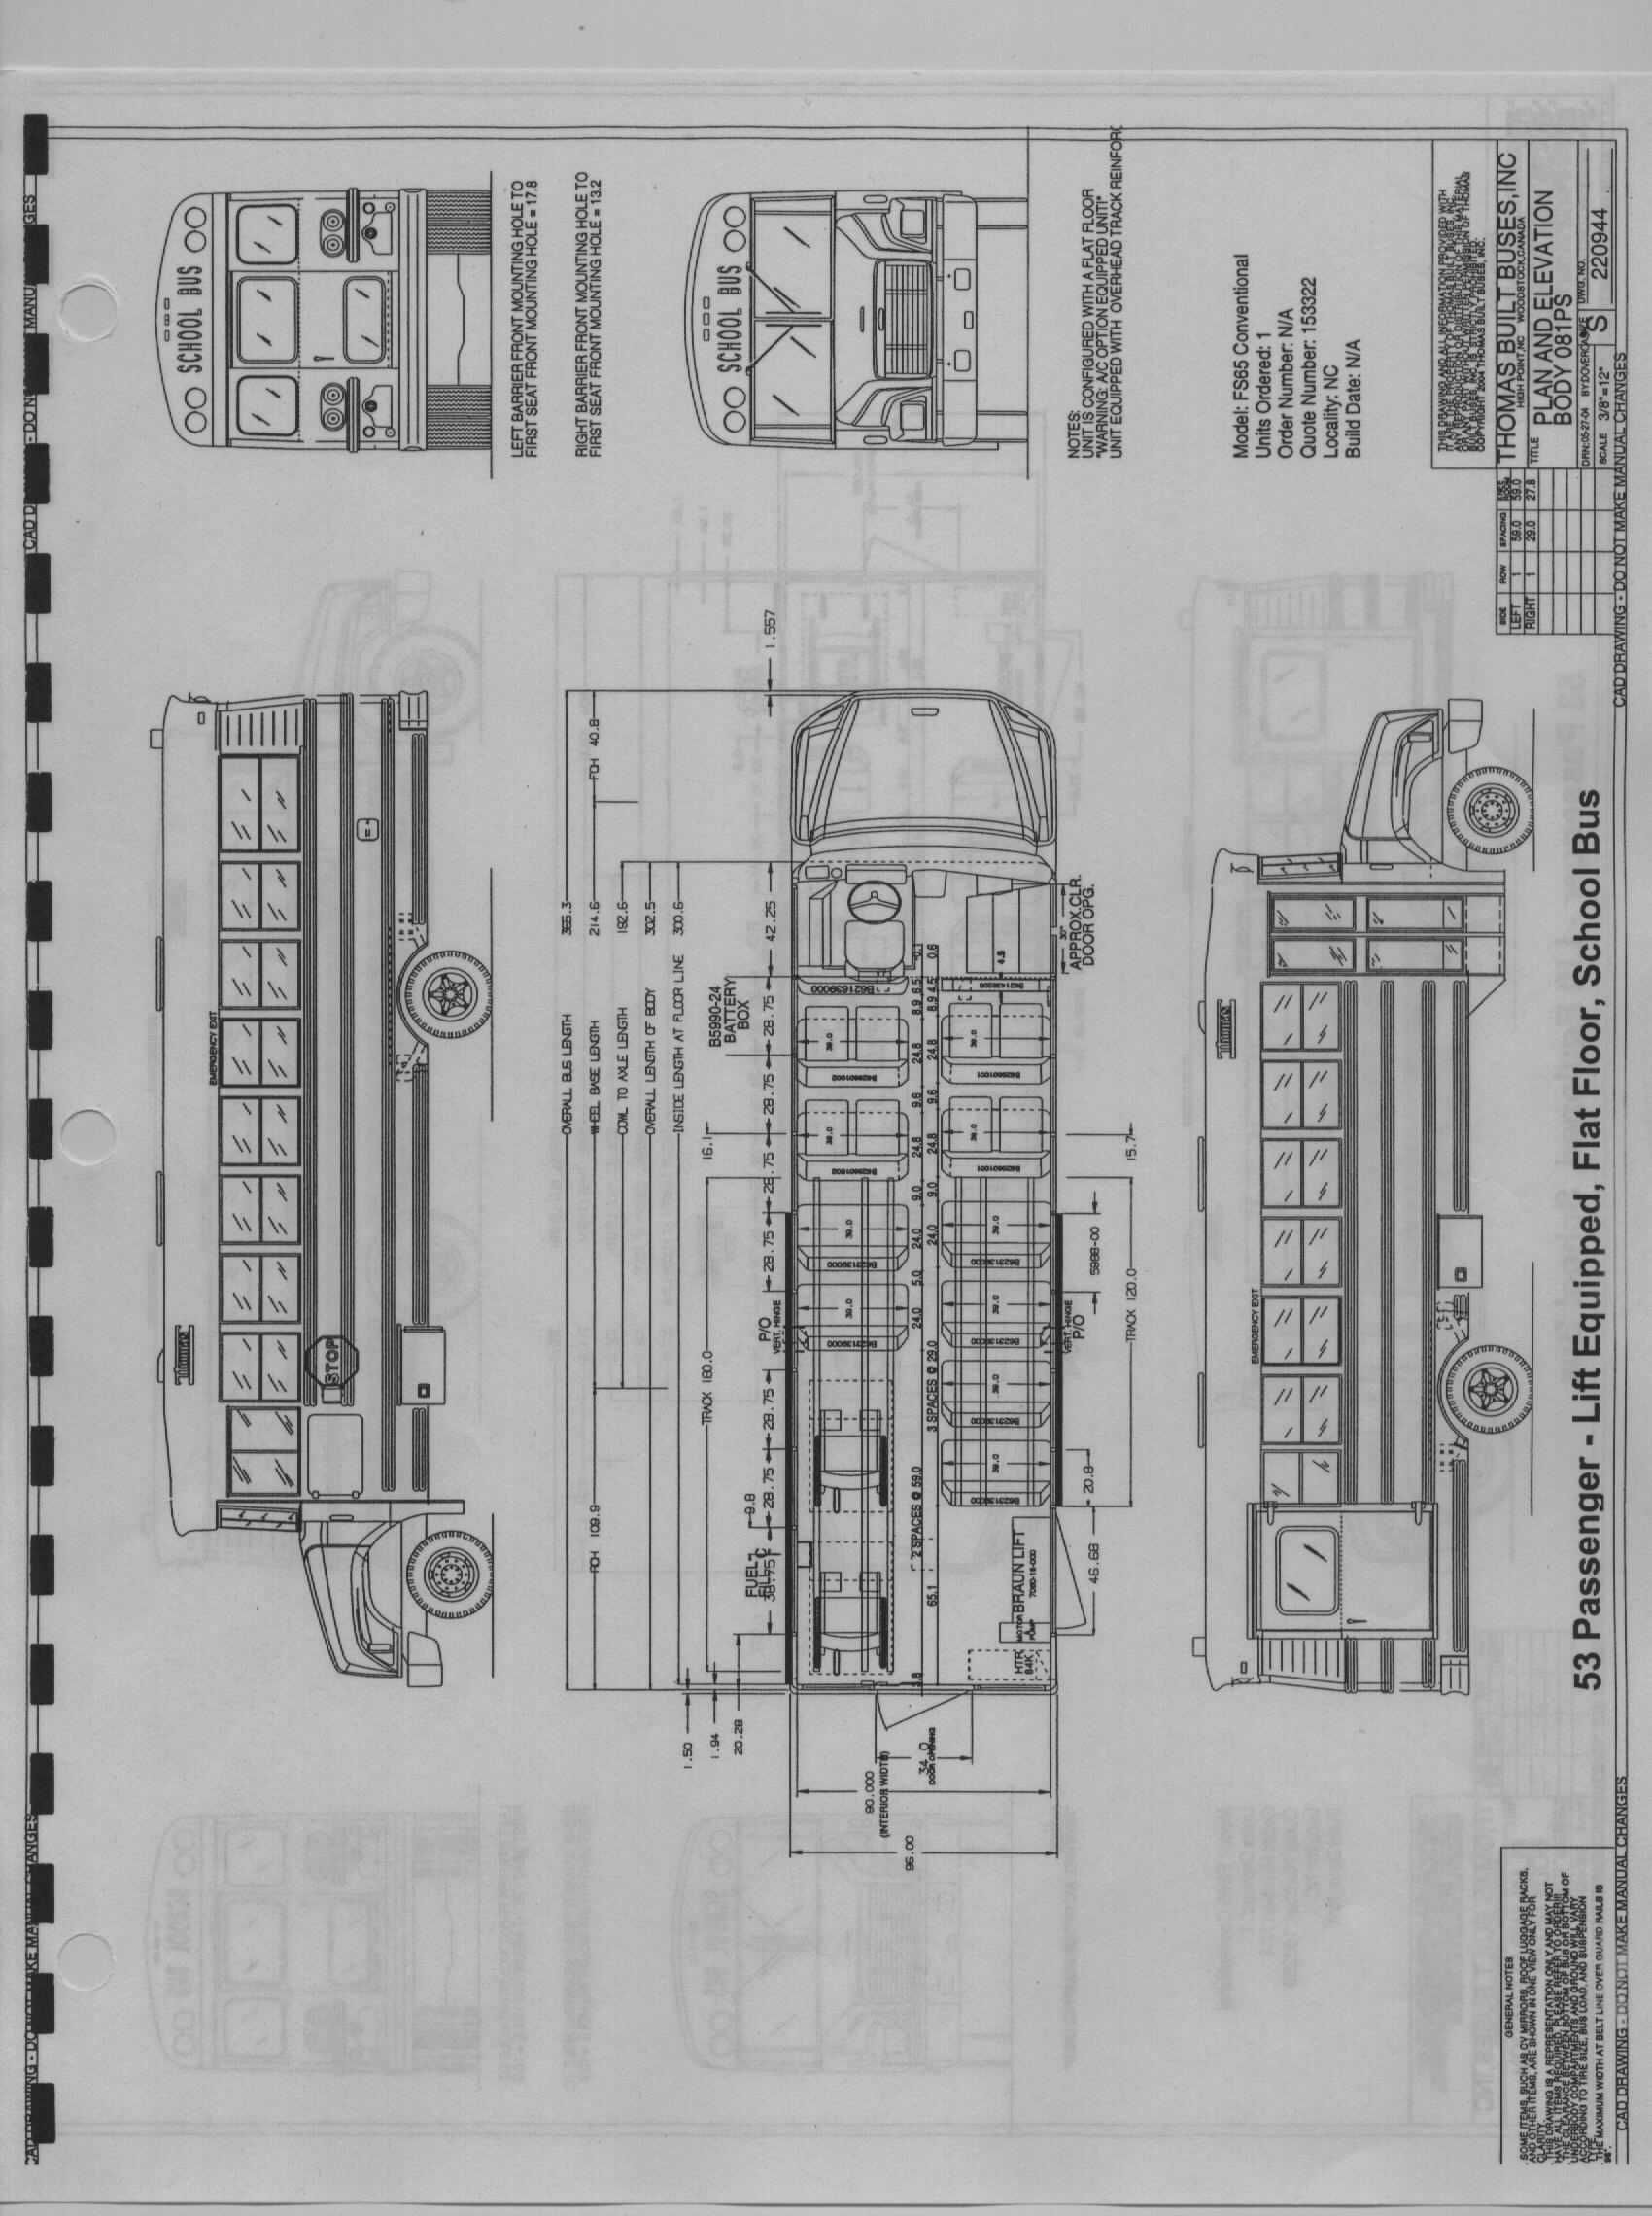 [WRG-9303] 2000 Honda Accord Fuse Box Diagram Fuel